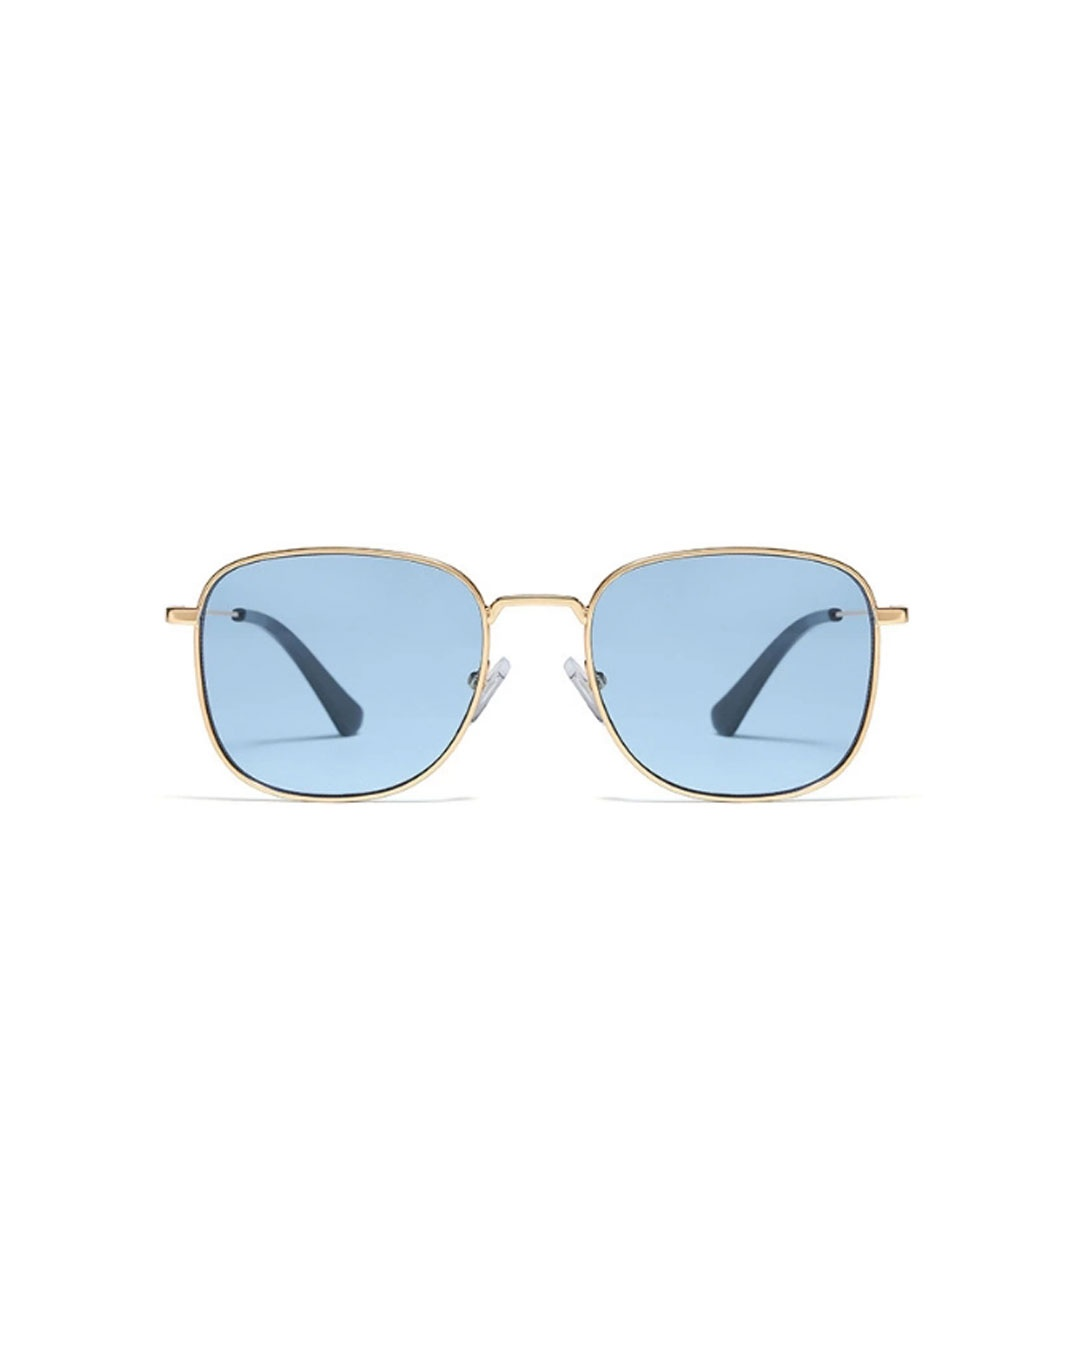 Sunglass style with a blue lens tint, gold metal detailing, and a square-shaped frame.